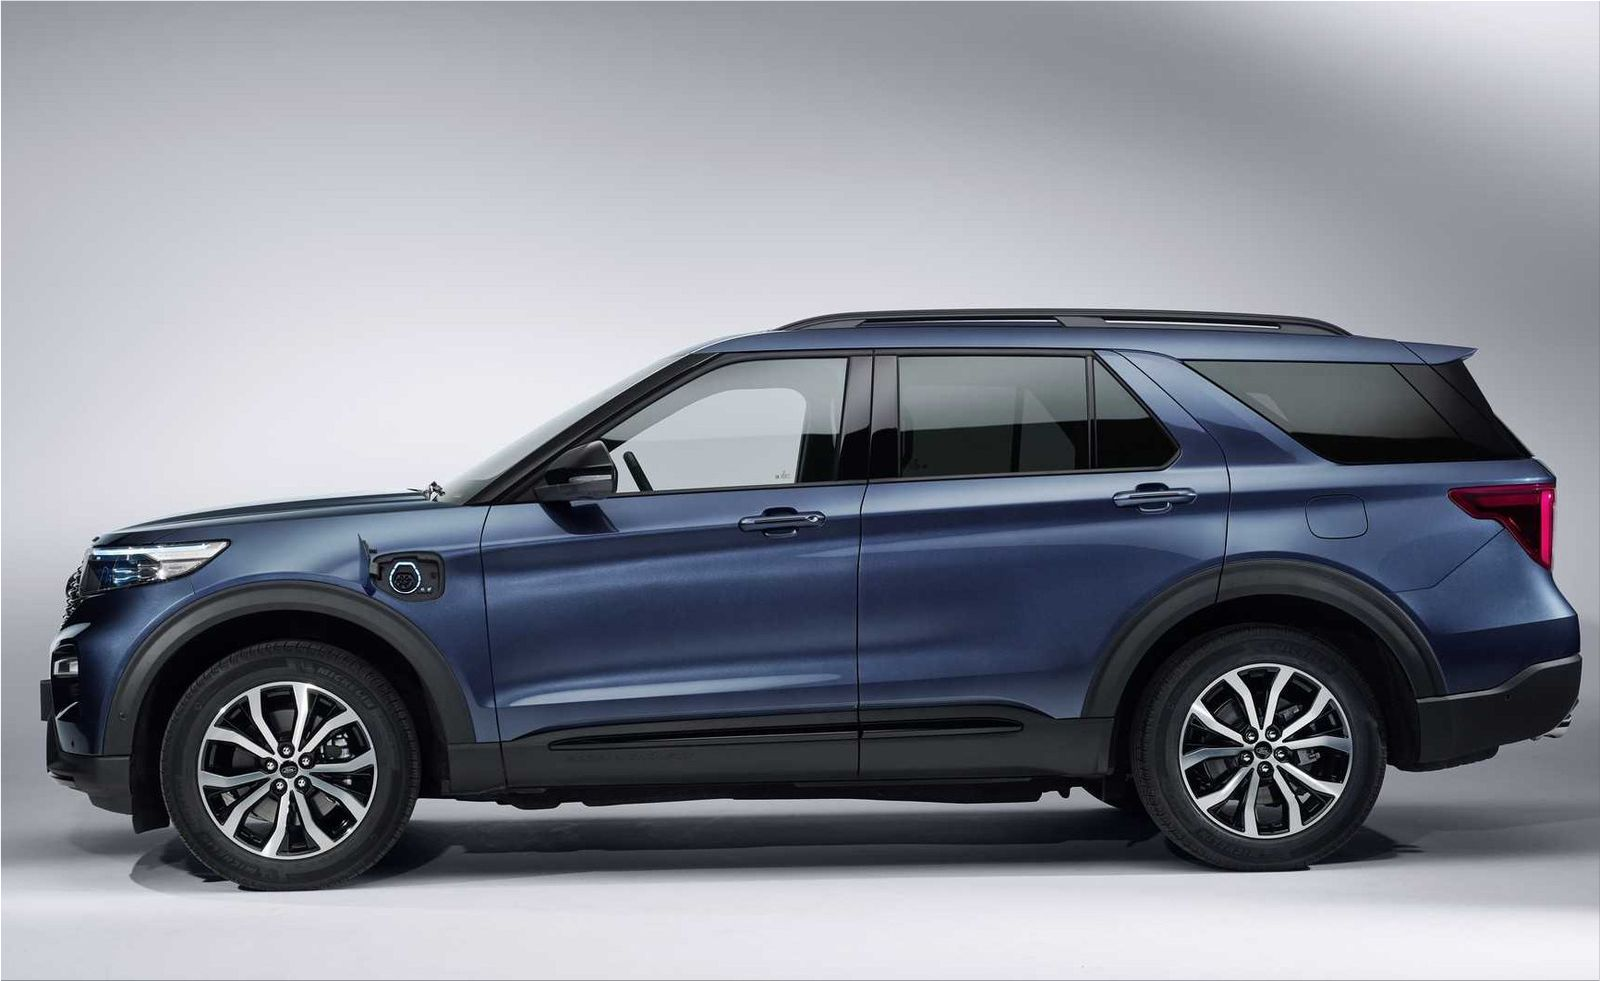 Ford Explorer Phev Is Sold At A Price Of 74 000 Euros